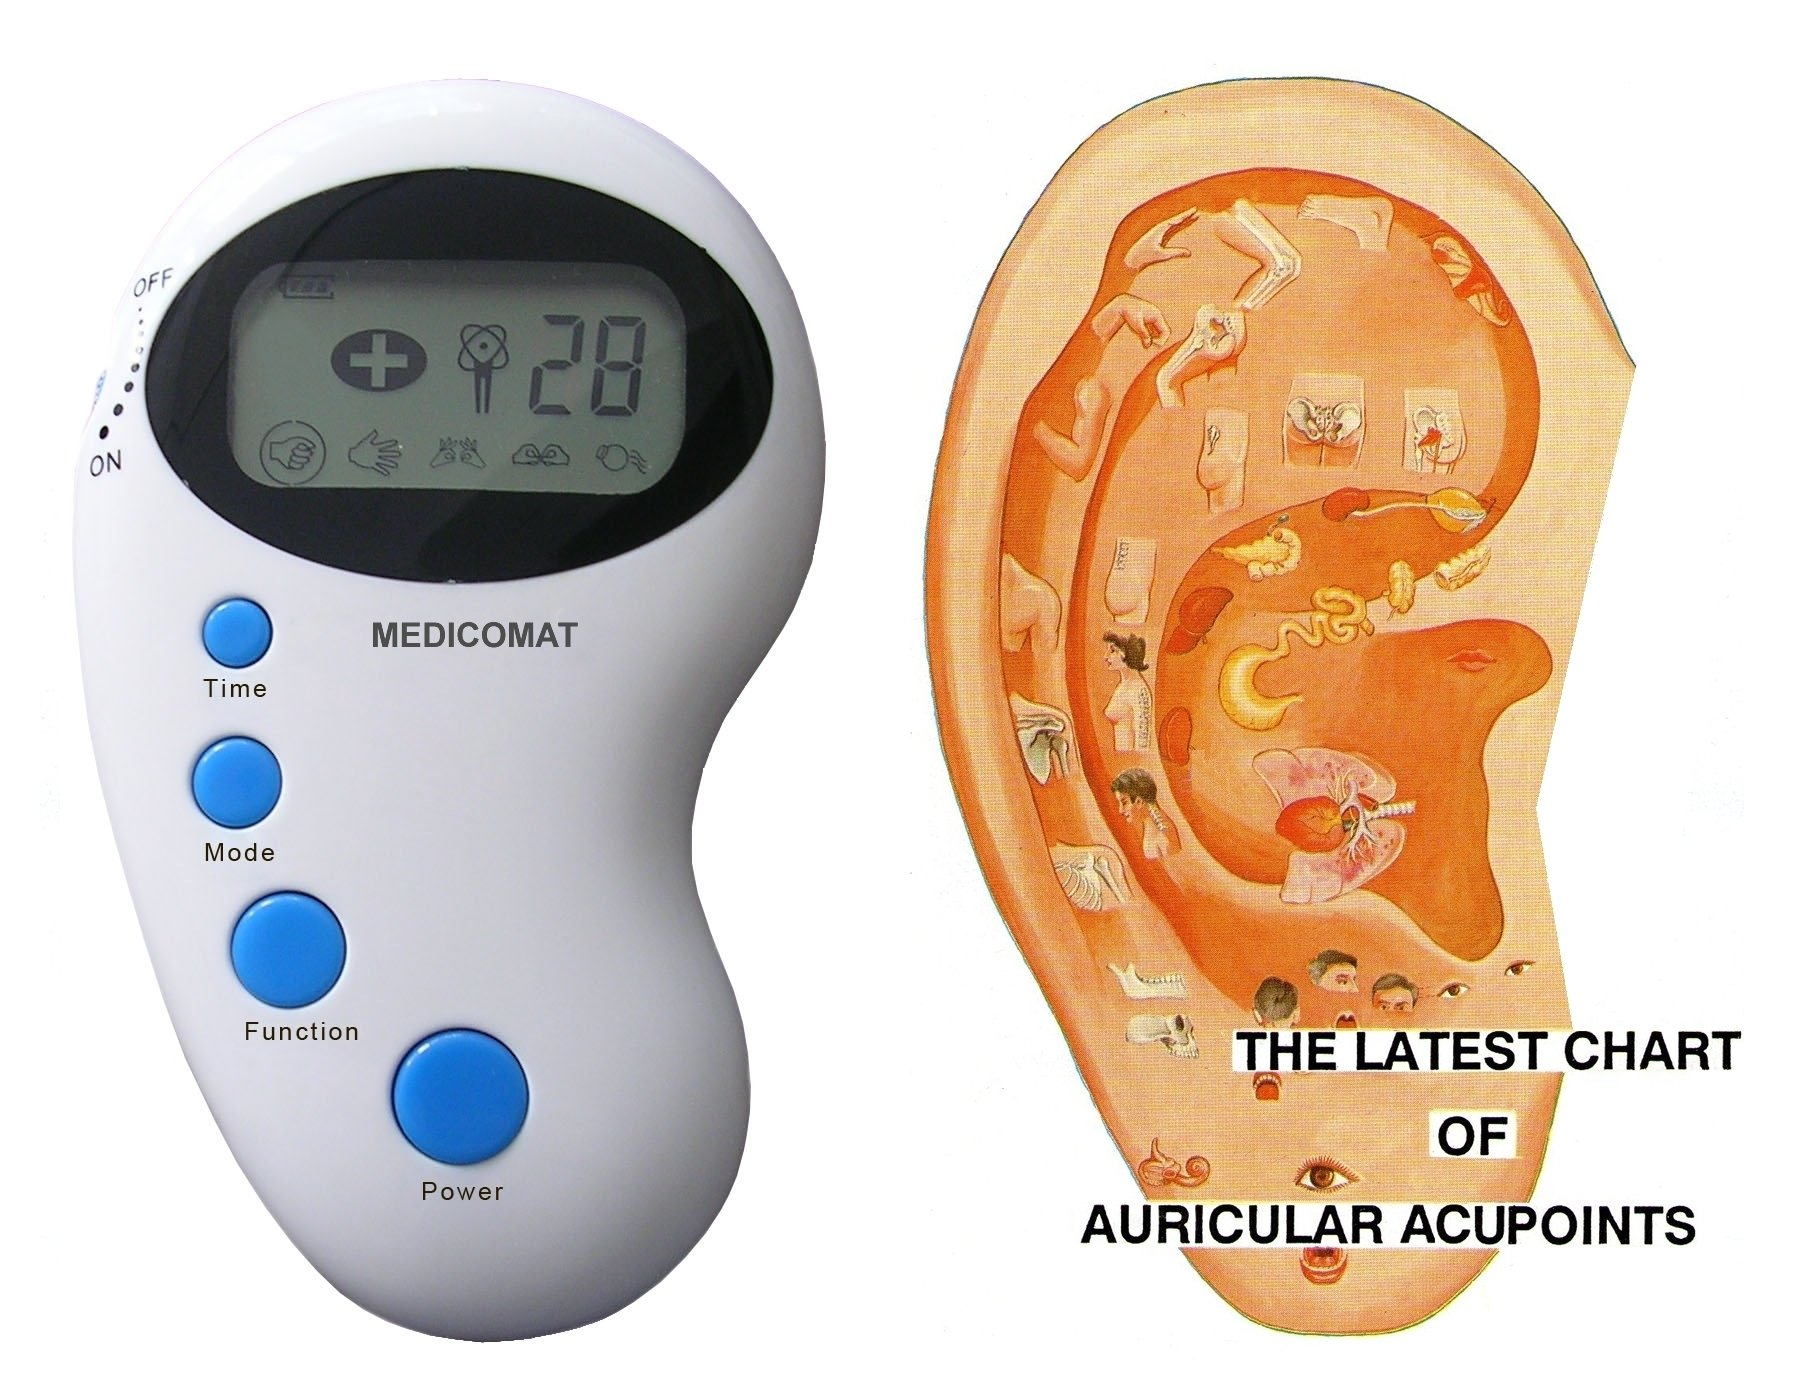 Auricular Acupuncture Treatment Medicomat Electronics Fully Automatic Treatment At The Comfort Of Home by Medicomat